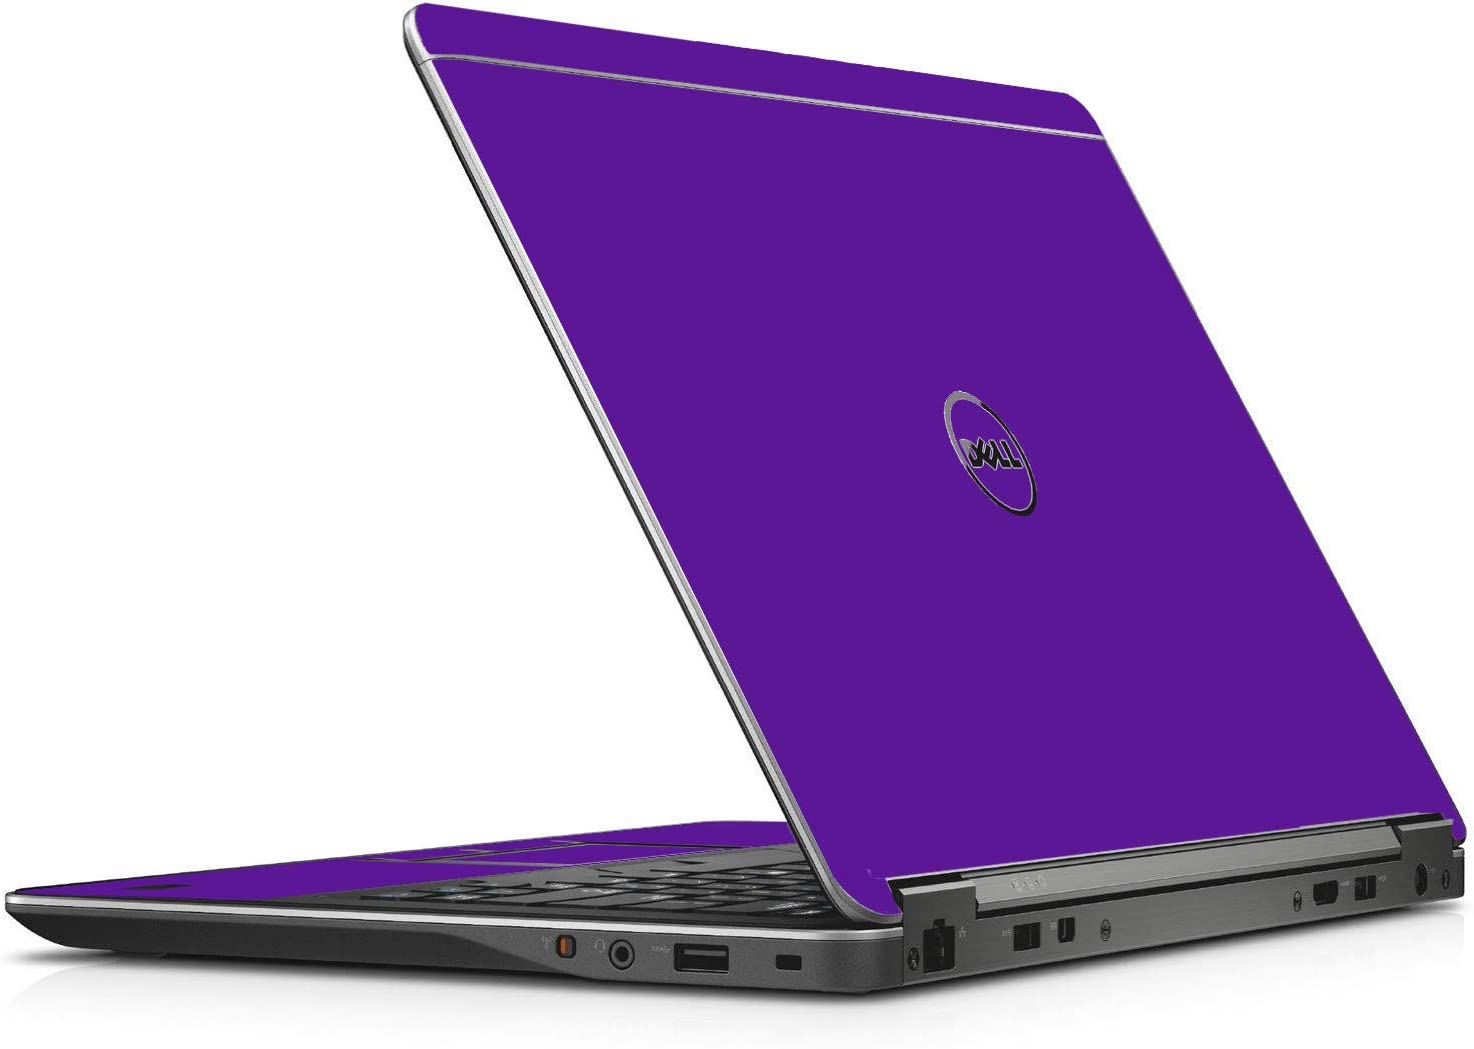 LidStyles Vinyl Protection Skin Kit Decal Sticker Compatible with Dell Latitude E7240 (Purple)